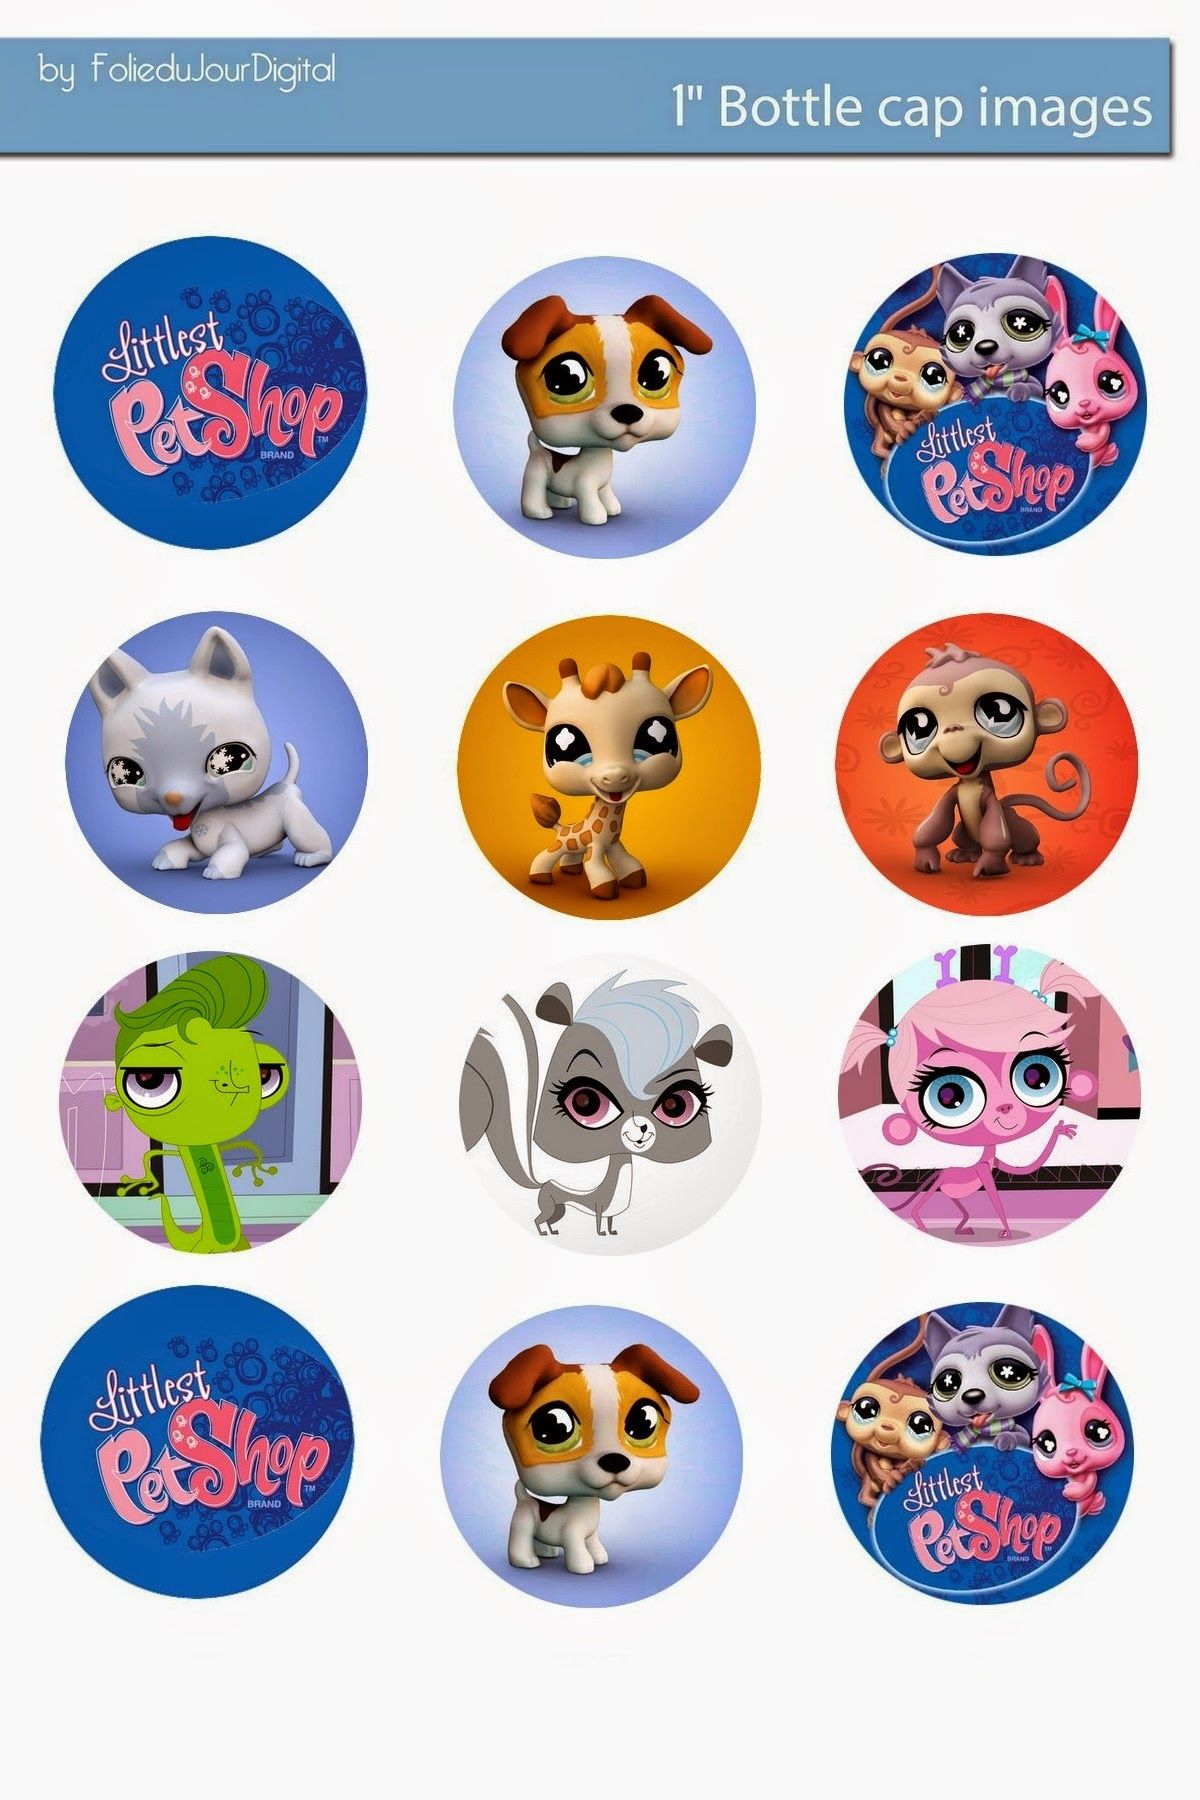 I M Sharing Free Digital Bottle Cap Images I Created Littlest Pet Shop Little Pet Shop Pet Shop